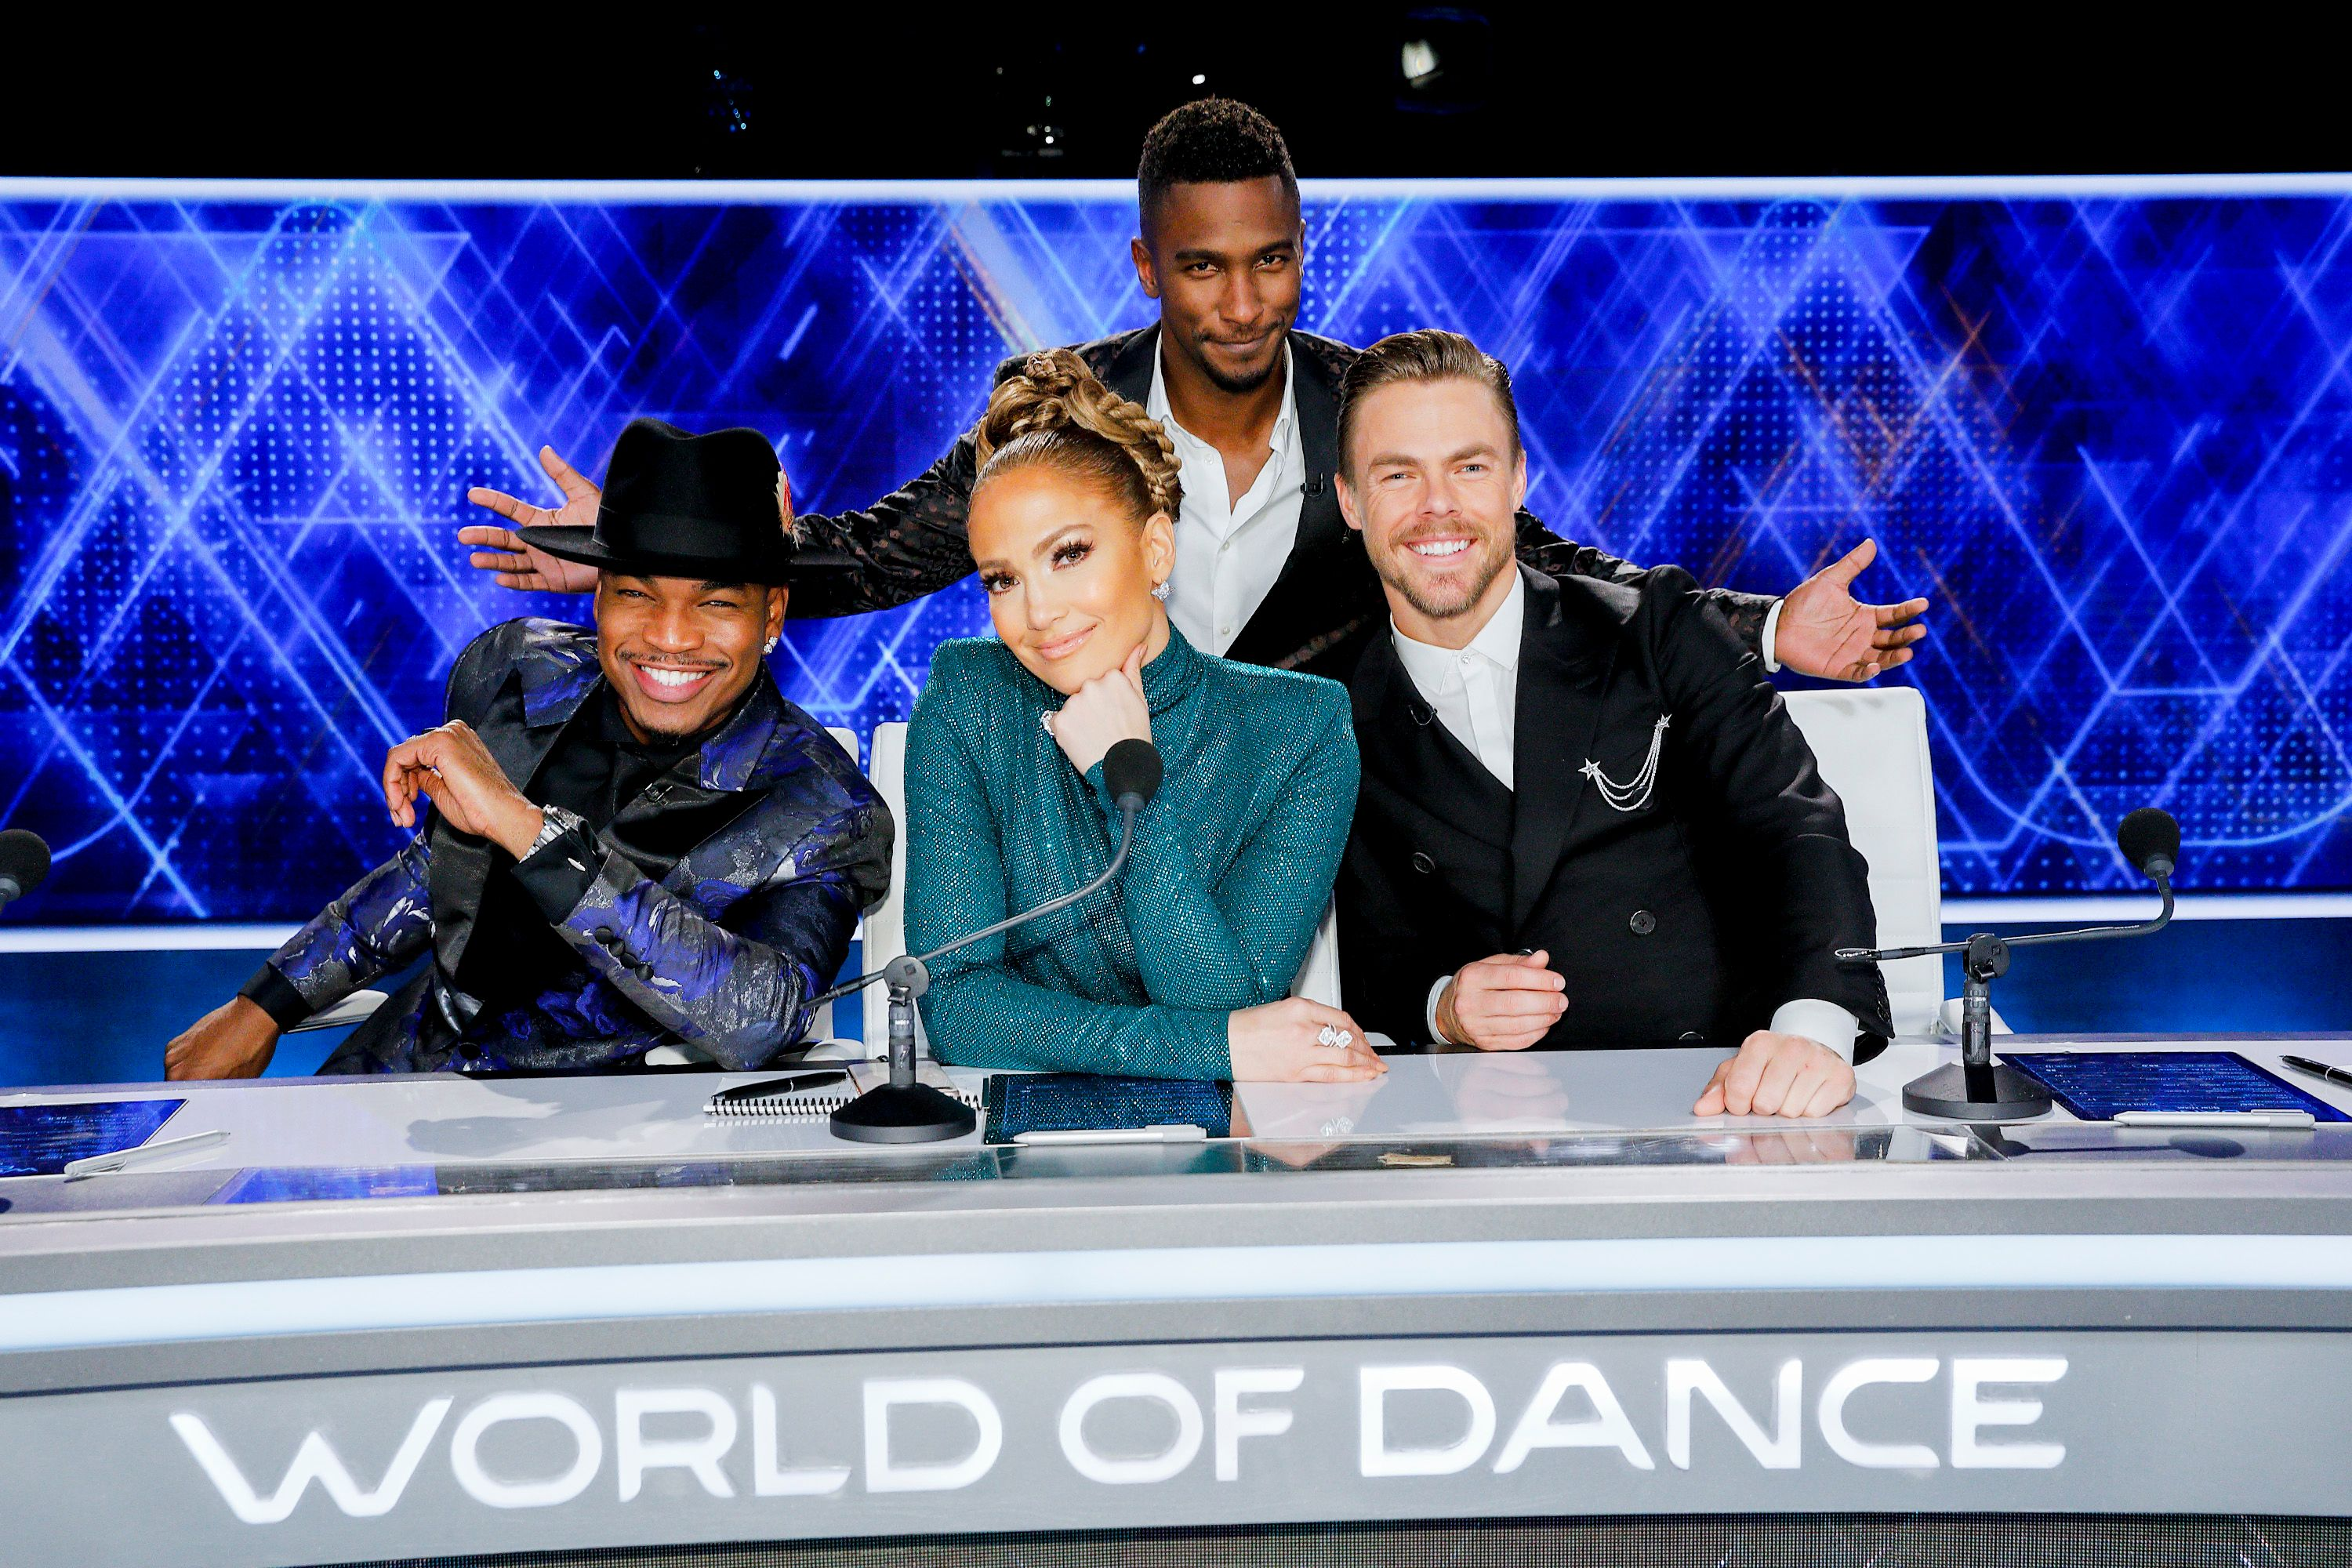 """World of Dance"" is gearing up for their fourth season."